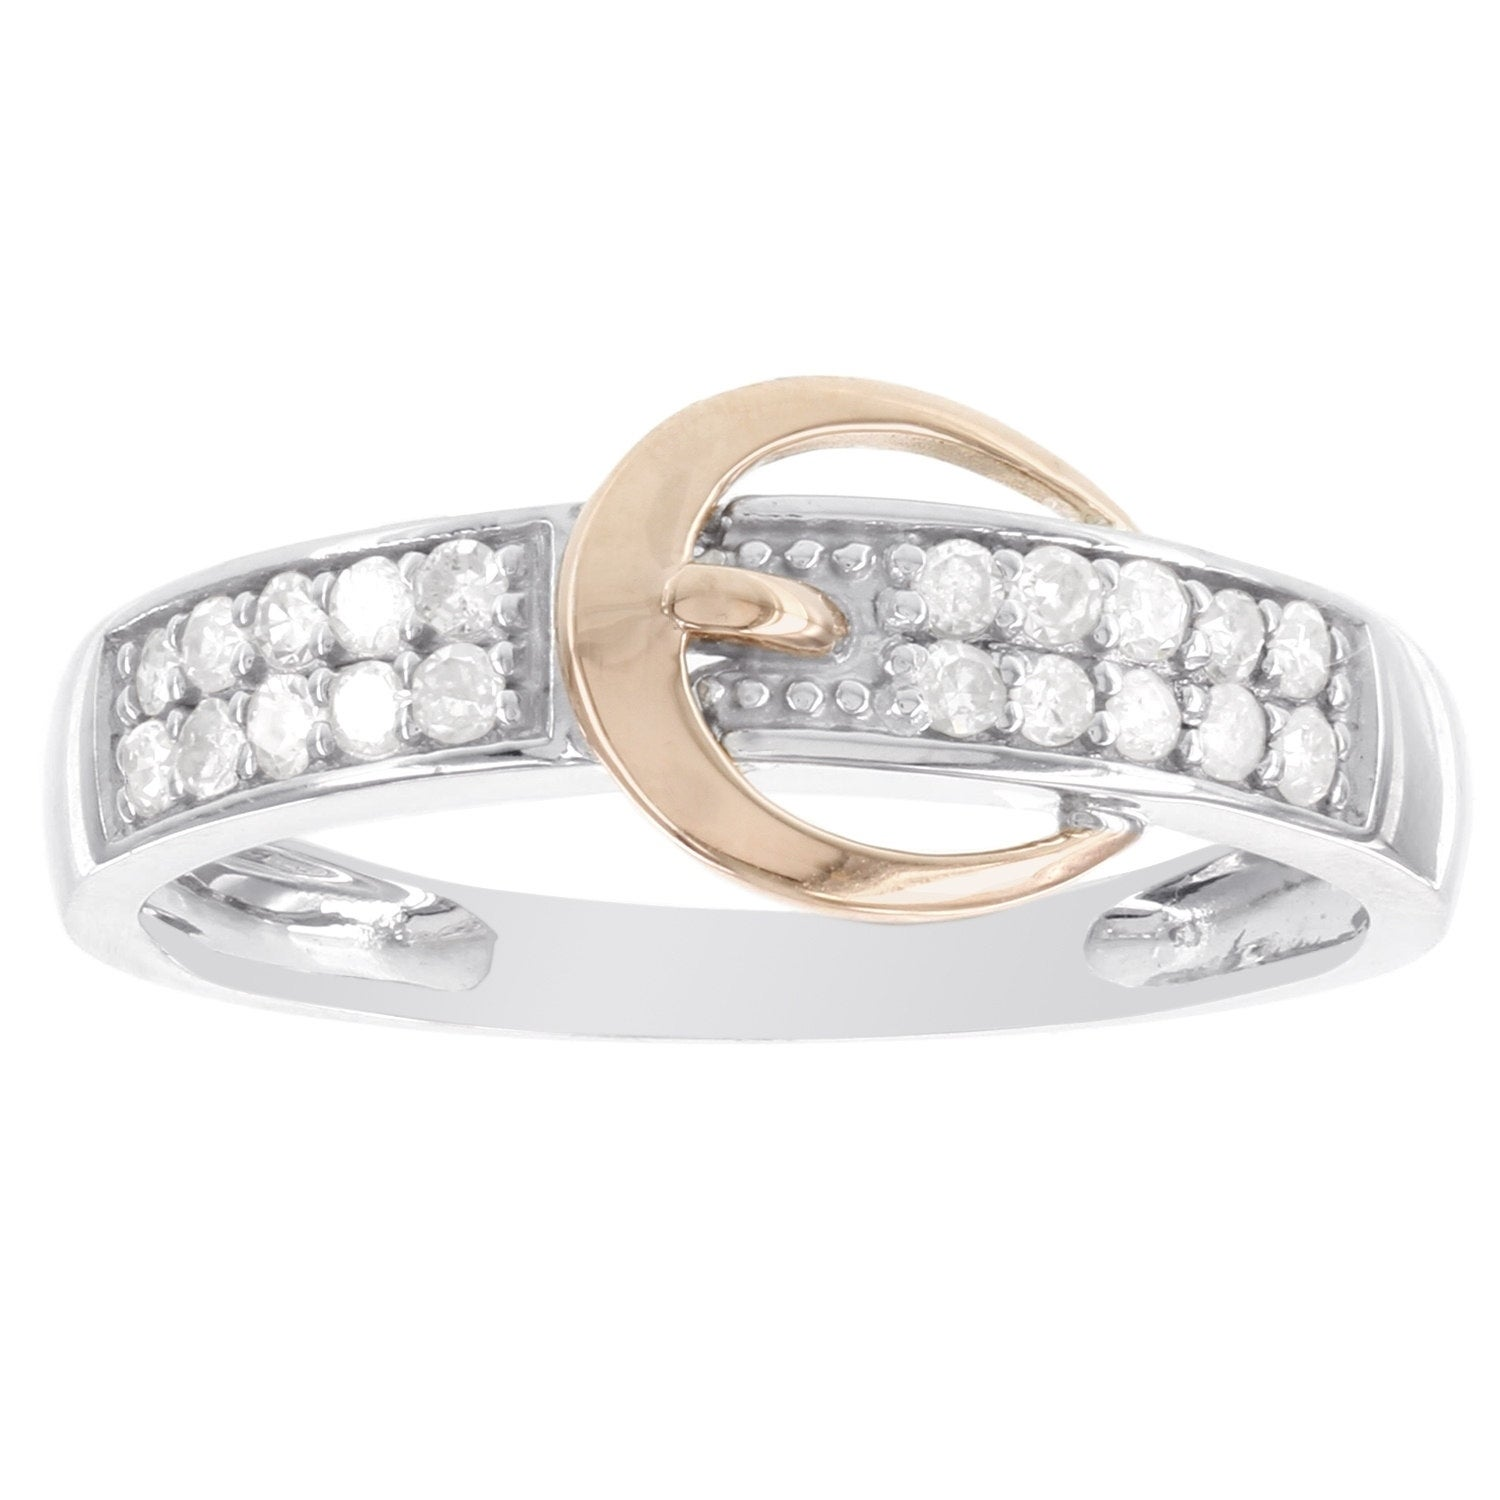 1//5 ct Diamond Buckle Ring in Sterling Silver /& 14K Gold